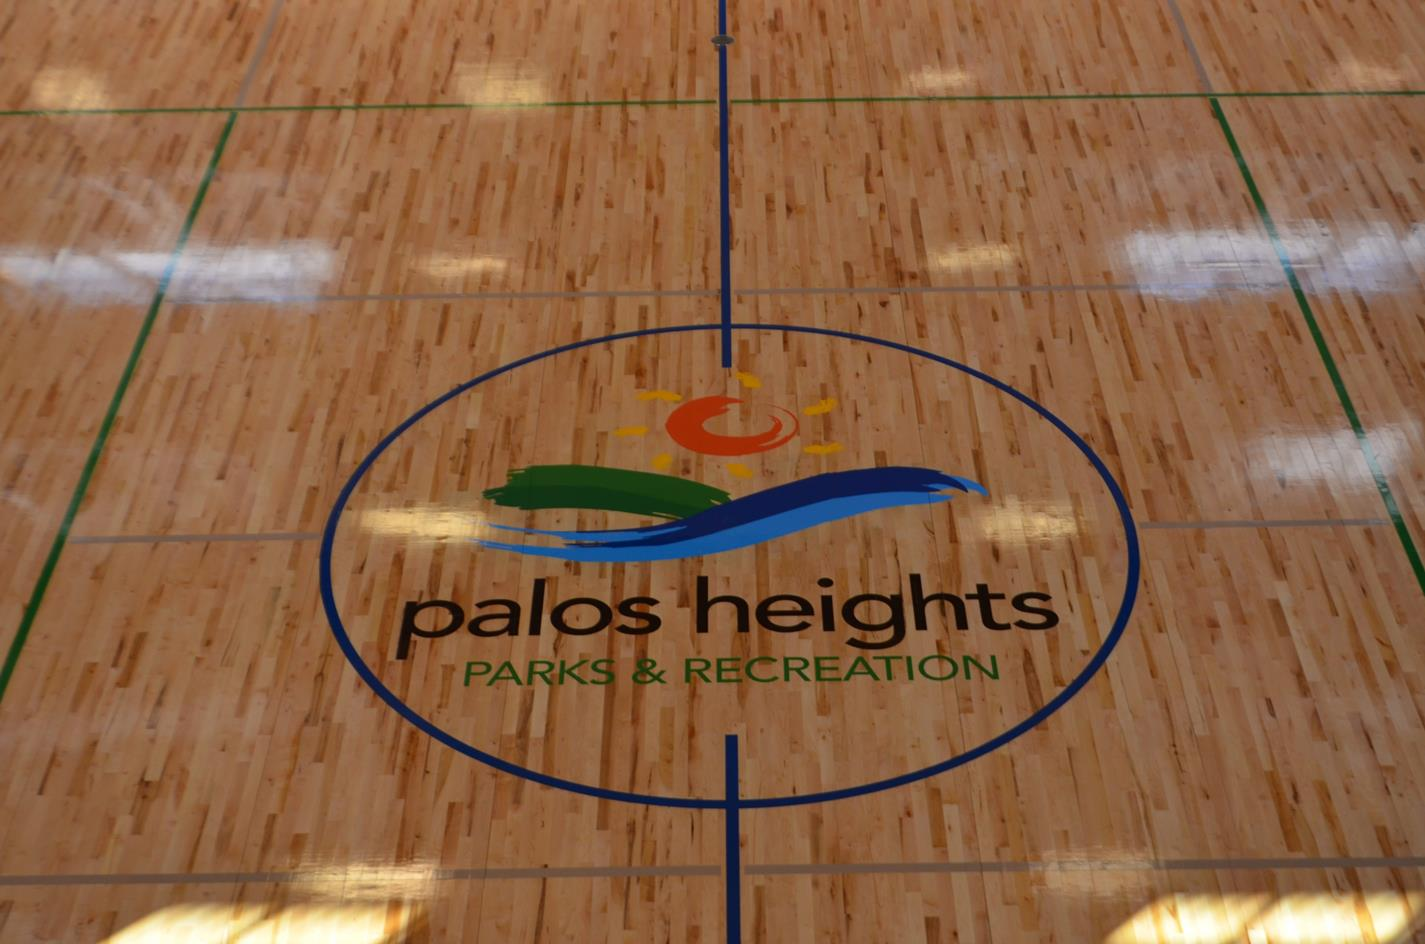 Palos Heights Parks and Recreation Logo on the Gym Floor